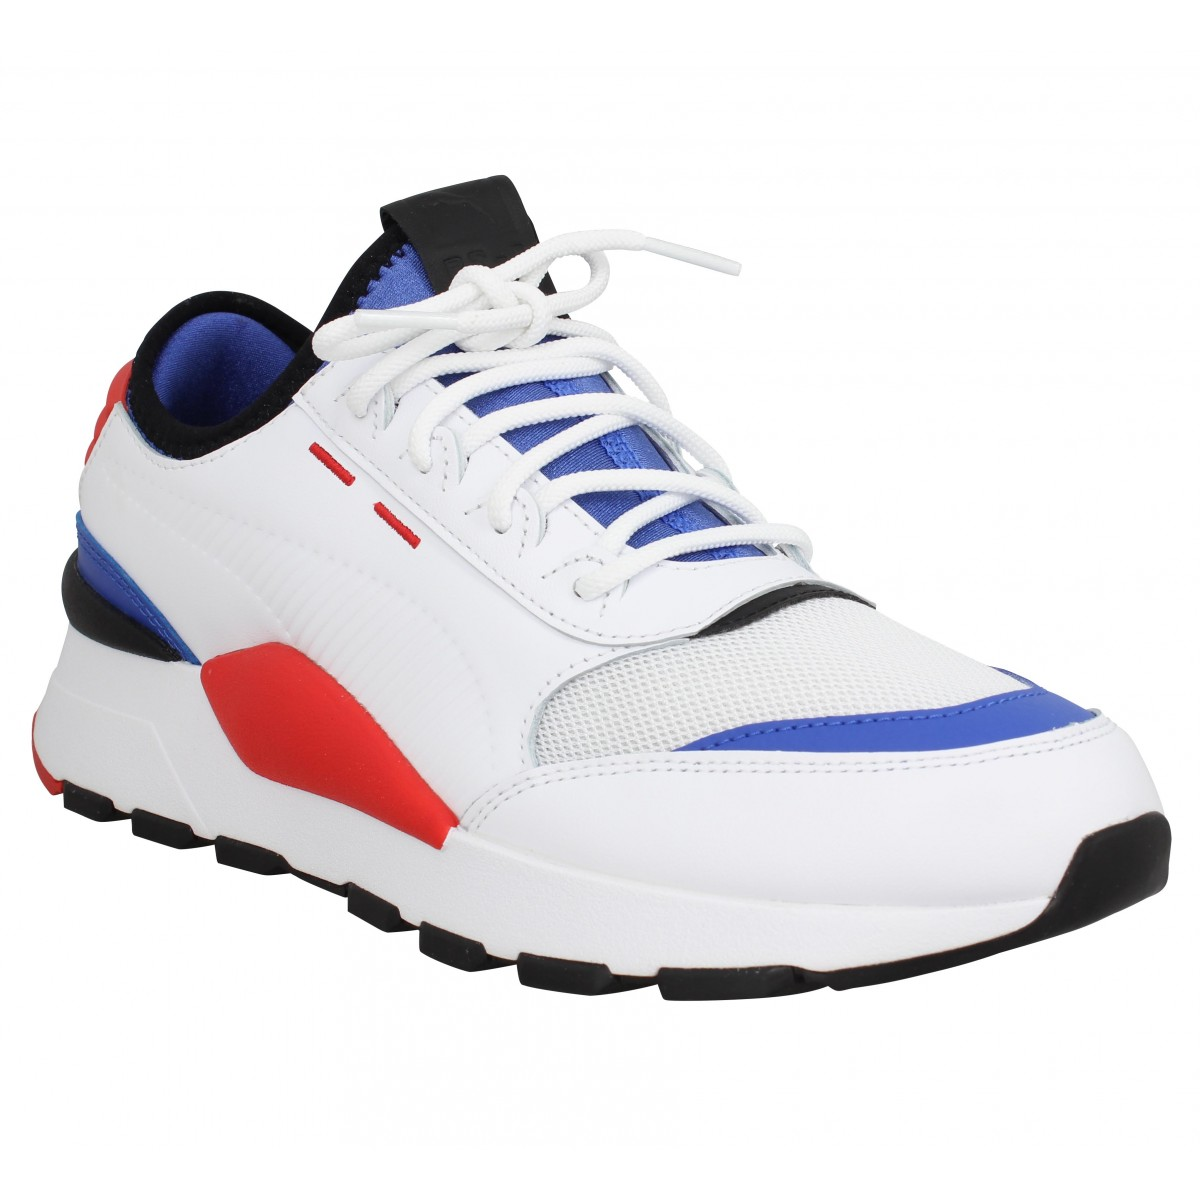 Puma Homme Rs-0 Sound Toile -43-blanc...